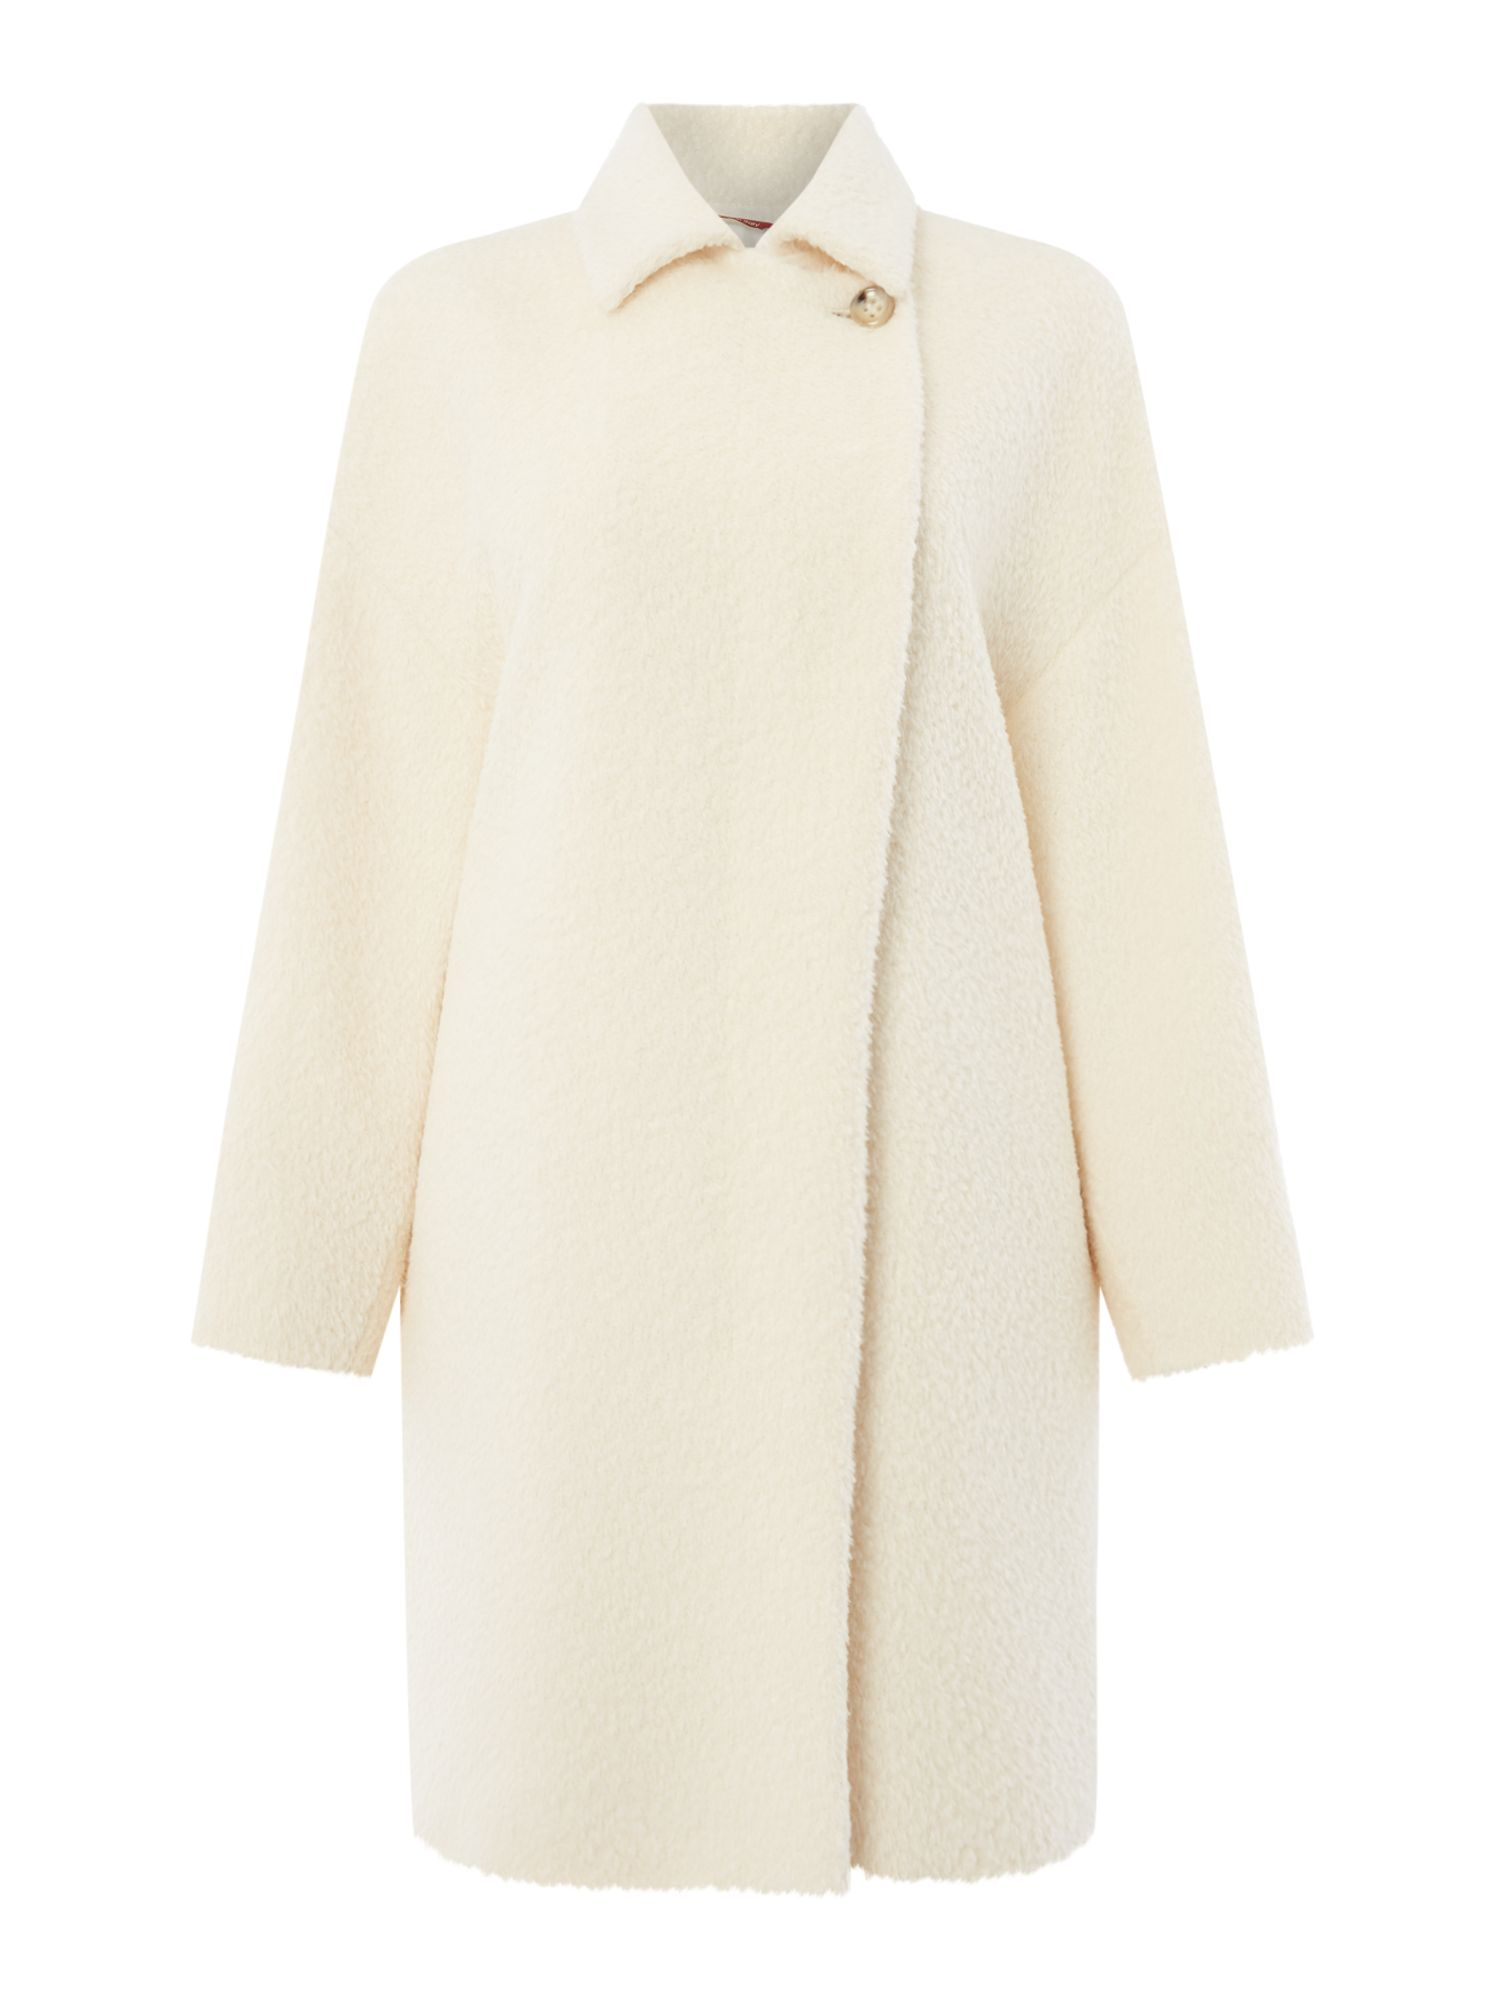 Max Mara Studio Sonia alpaca wool coat, Milk